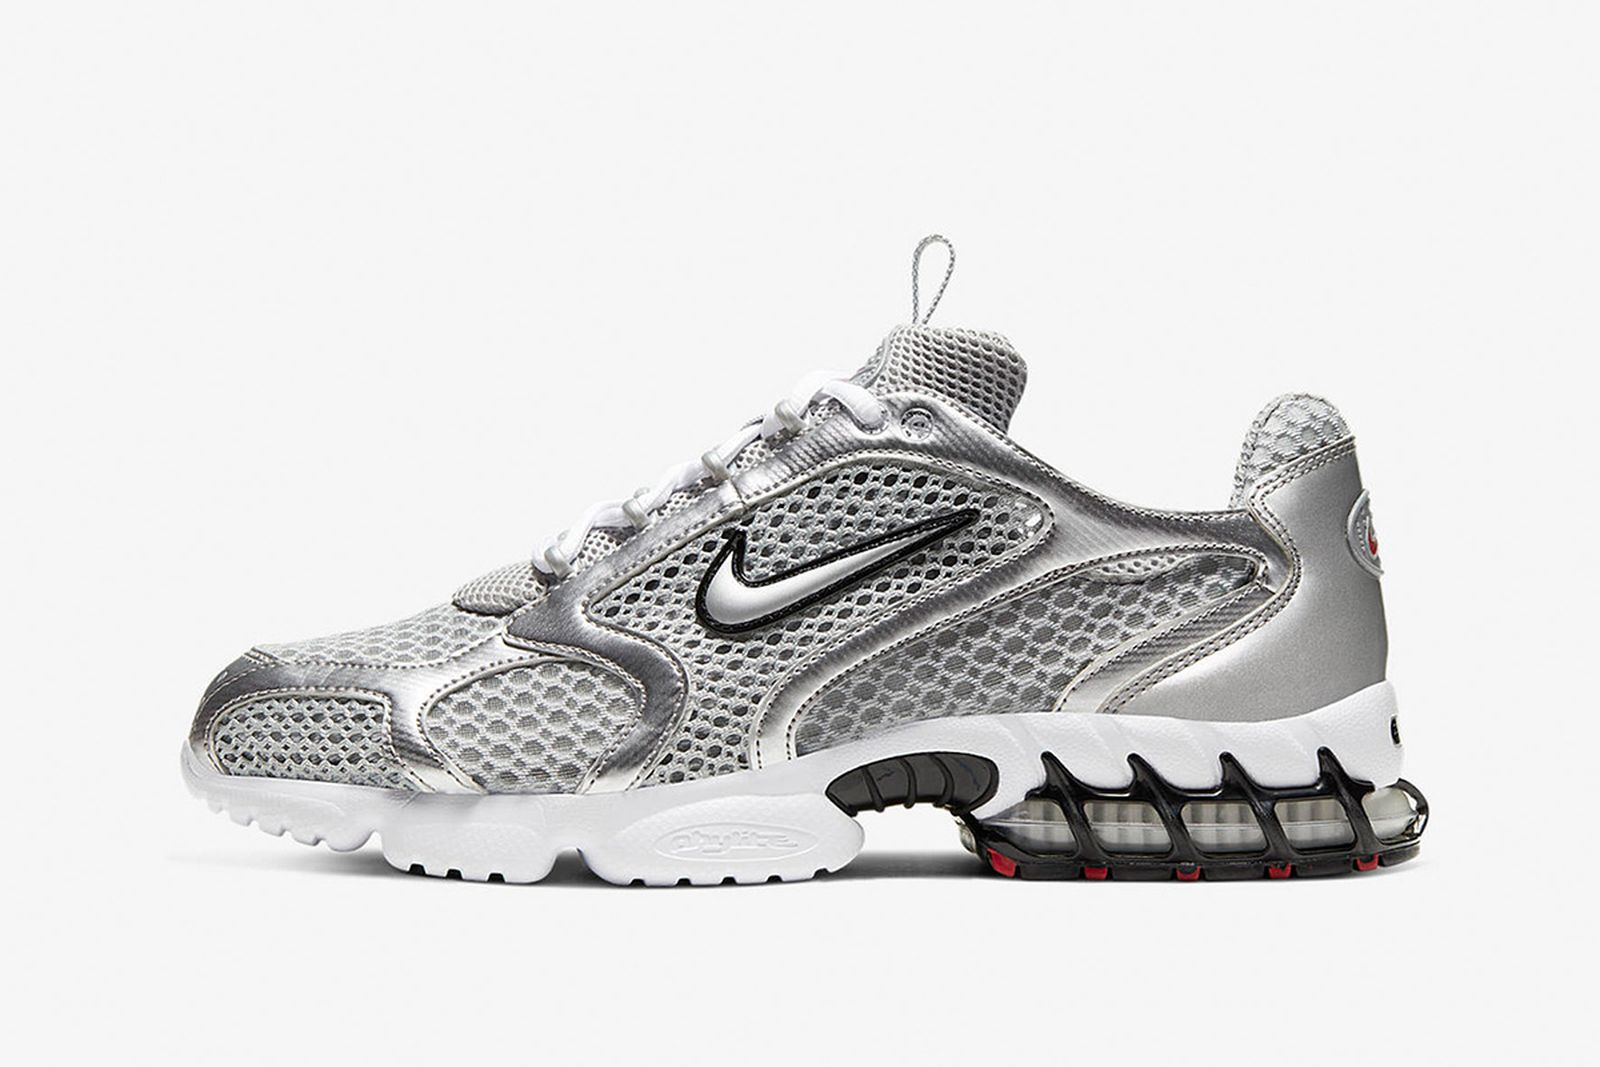 nike-air-zoom-spiridon-caged-2-release-date-price-11